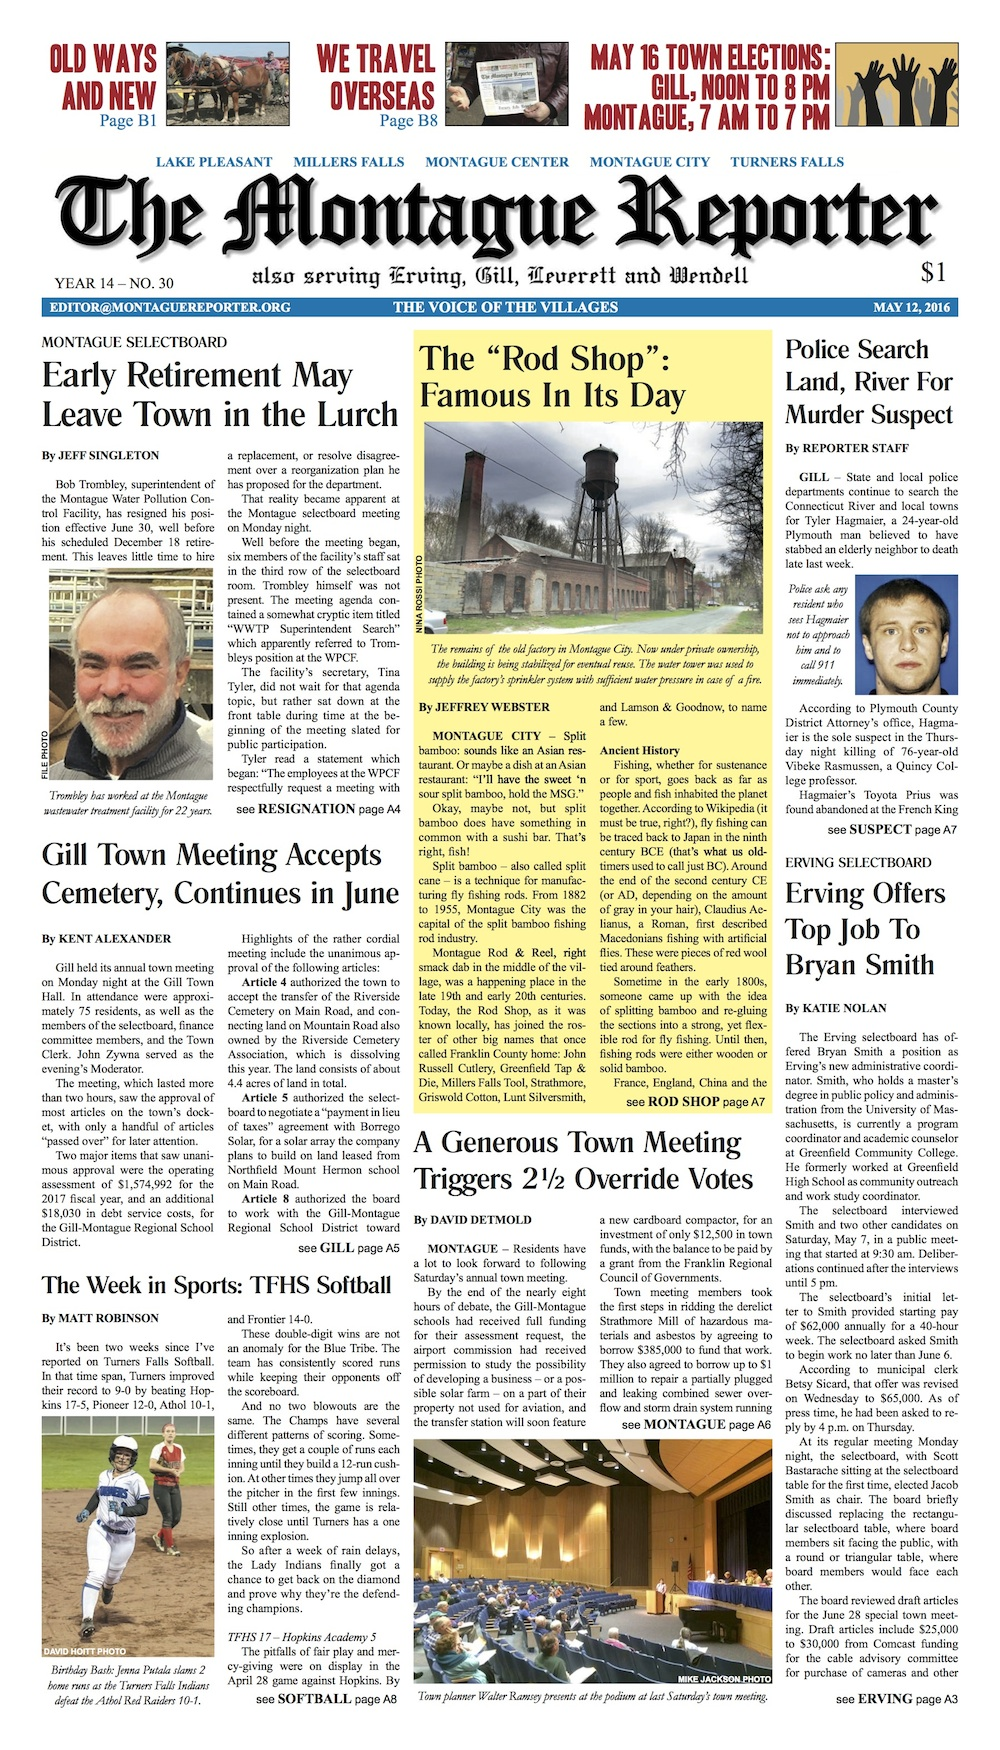 Page A1, 5/12/16